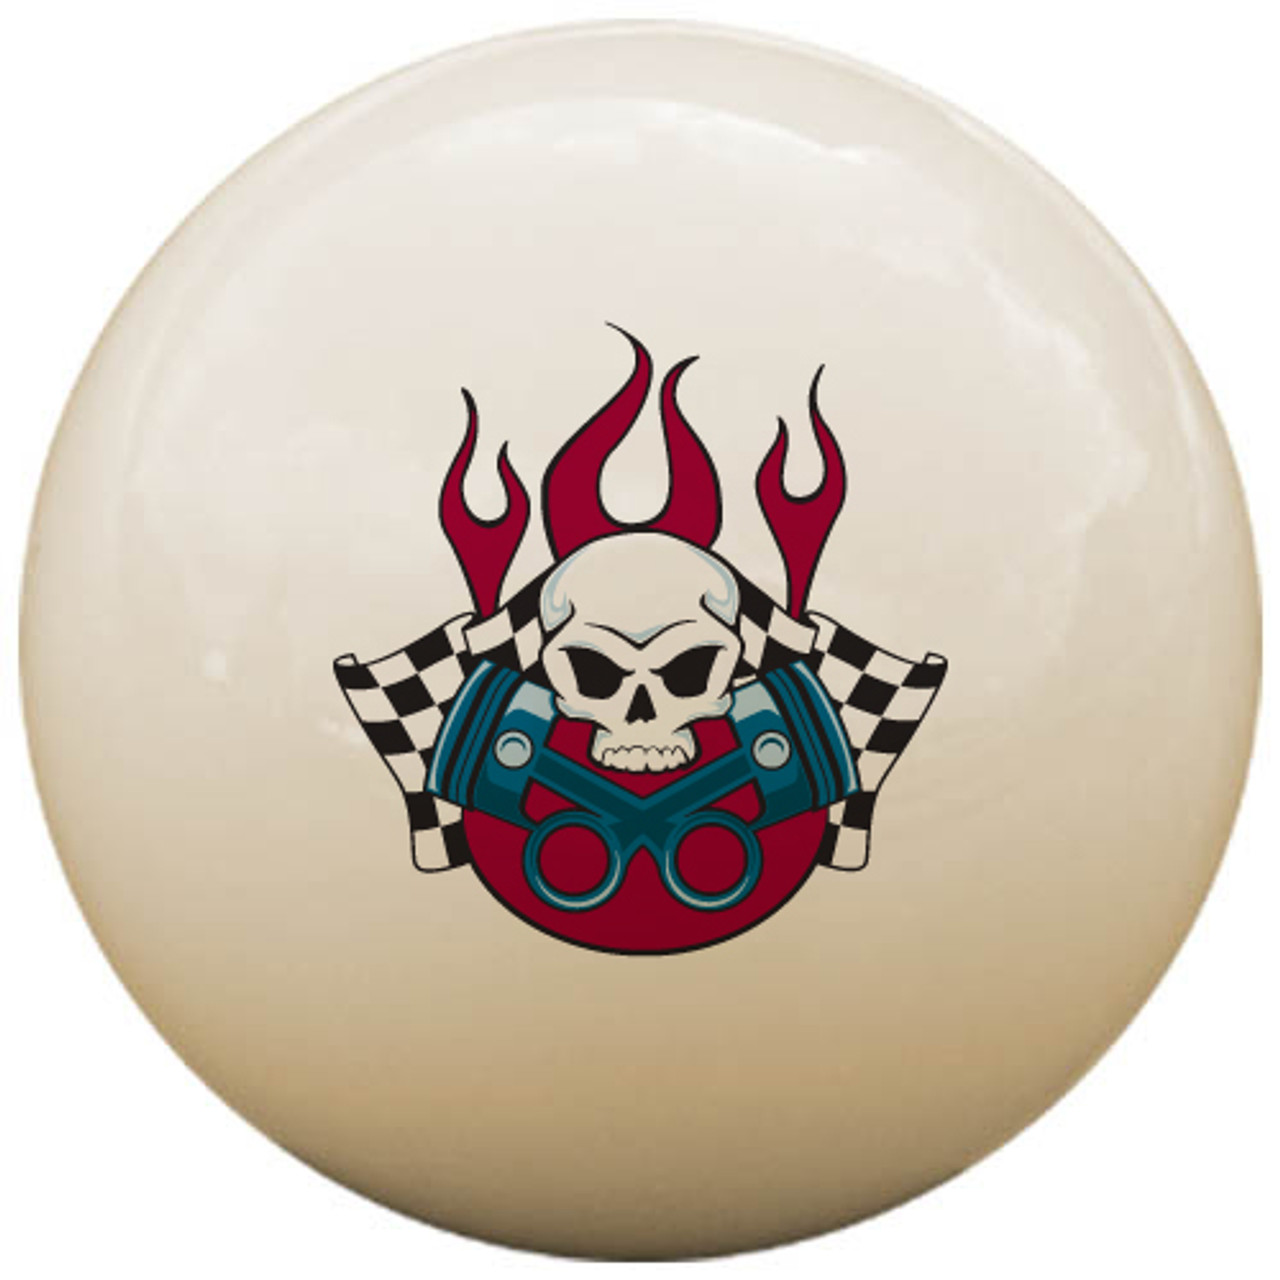 Custom Pool Cue Ball - Gearhead